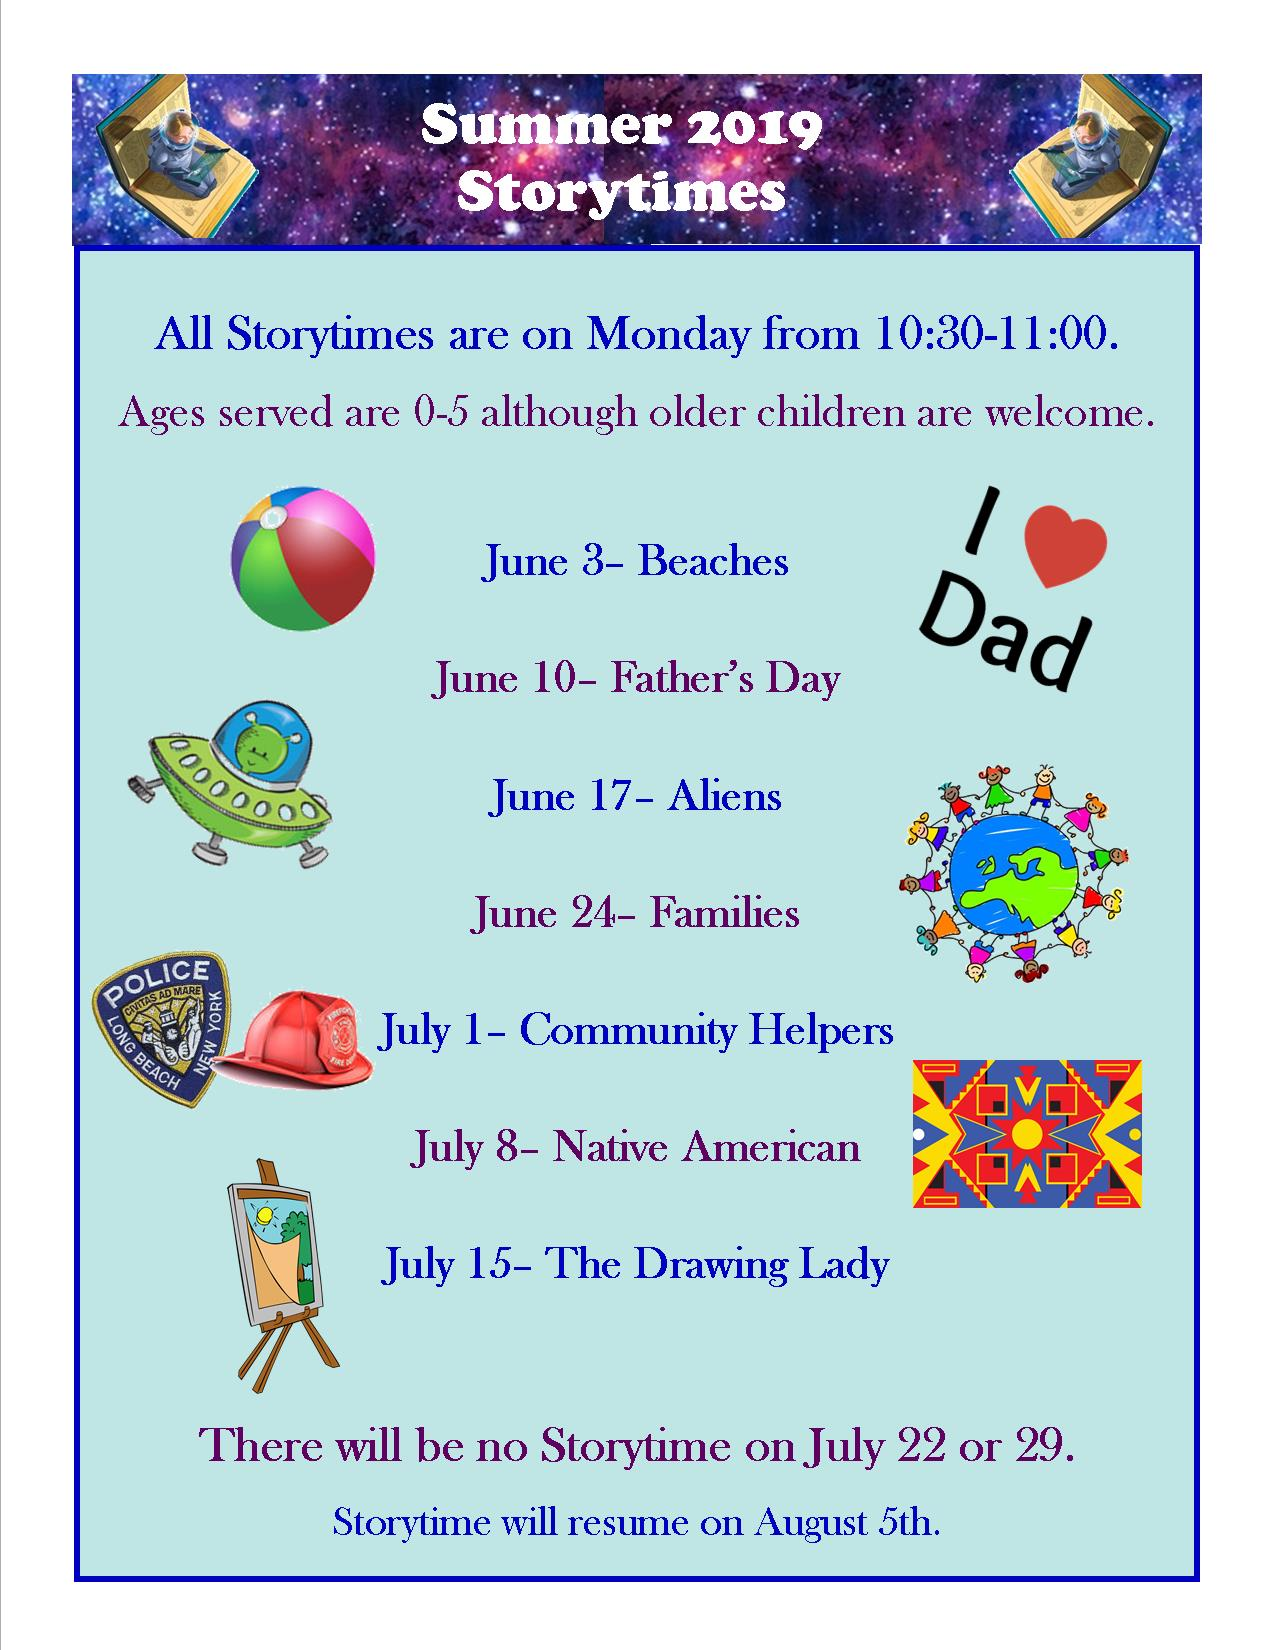 Summer Storytime Themes and Dates